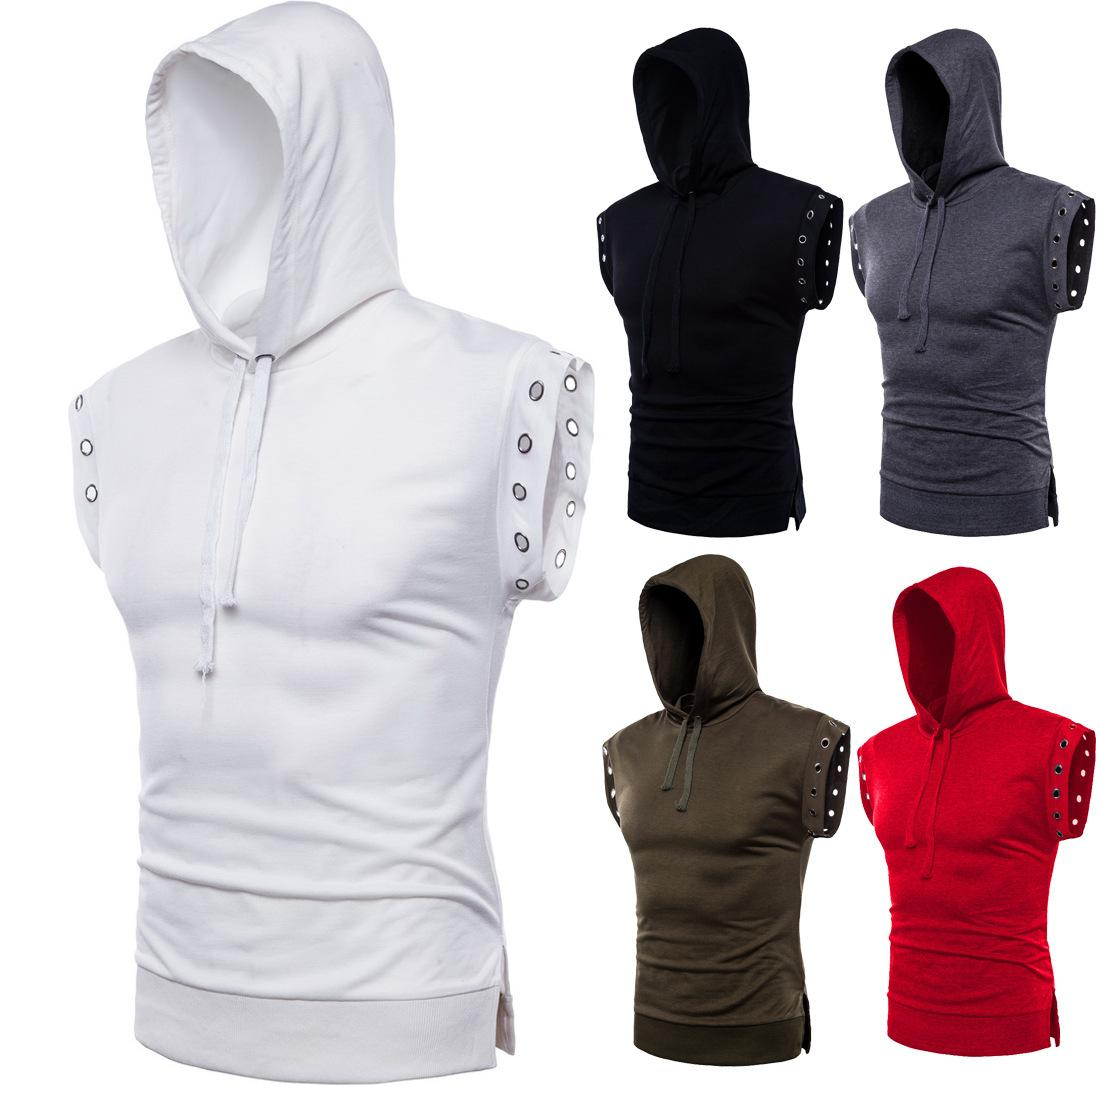 2021 Mens T-shirt Men Summer Fishion tshirt Cool Casual Sport Style Solid Color Tee breathable Hooded Sleeveless Leisure Width Top